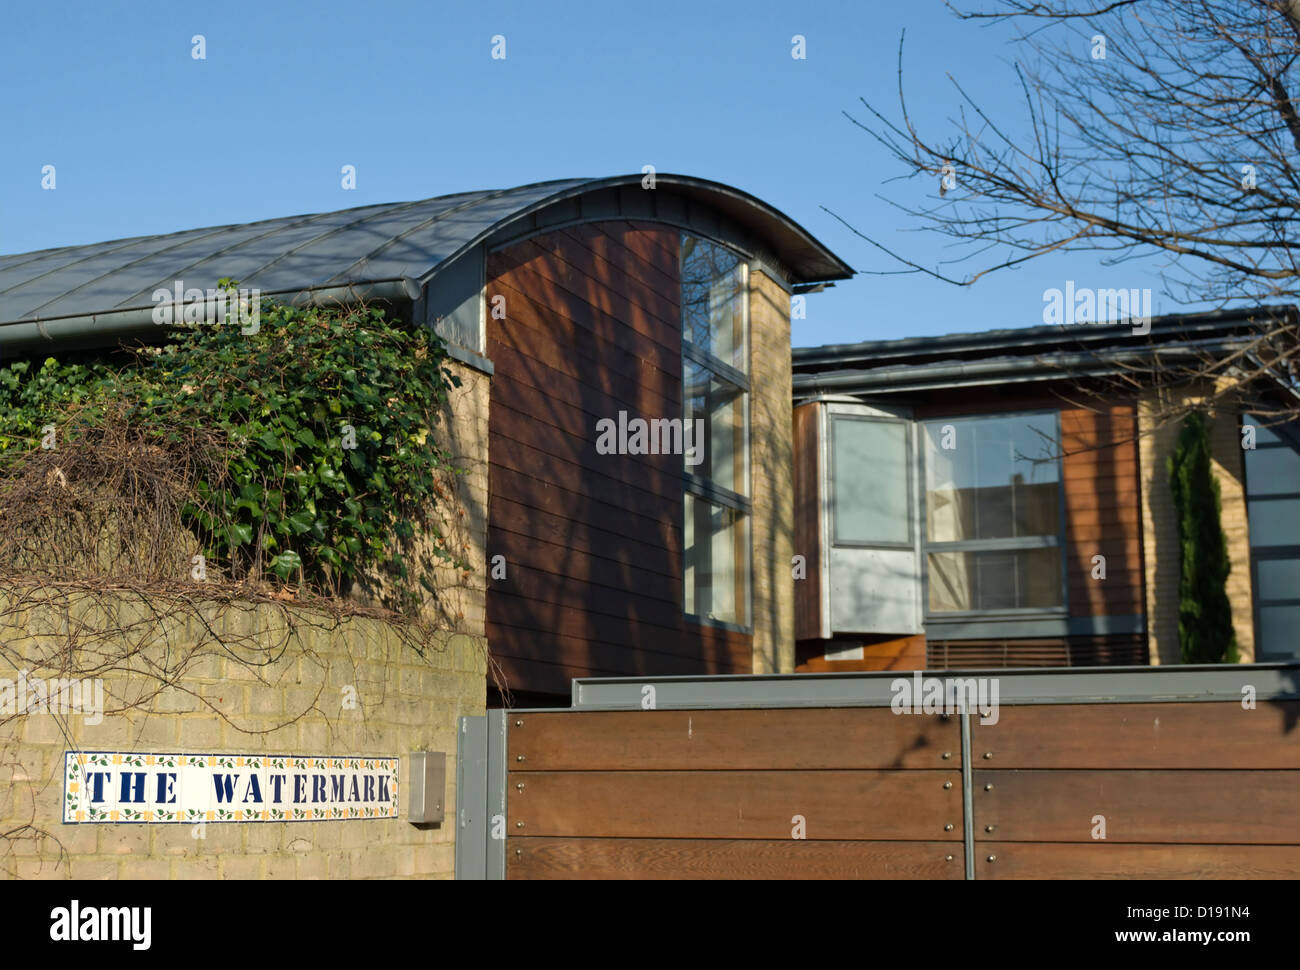 entrance with name sign of the watermark, an architecturally innovative house of 1999, twickenham, middlesex, england - Stock Image